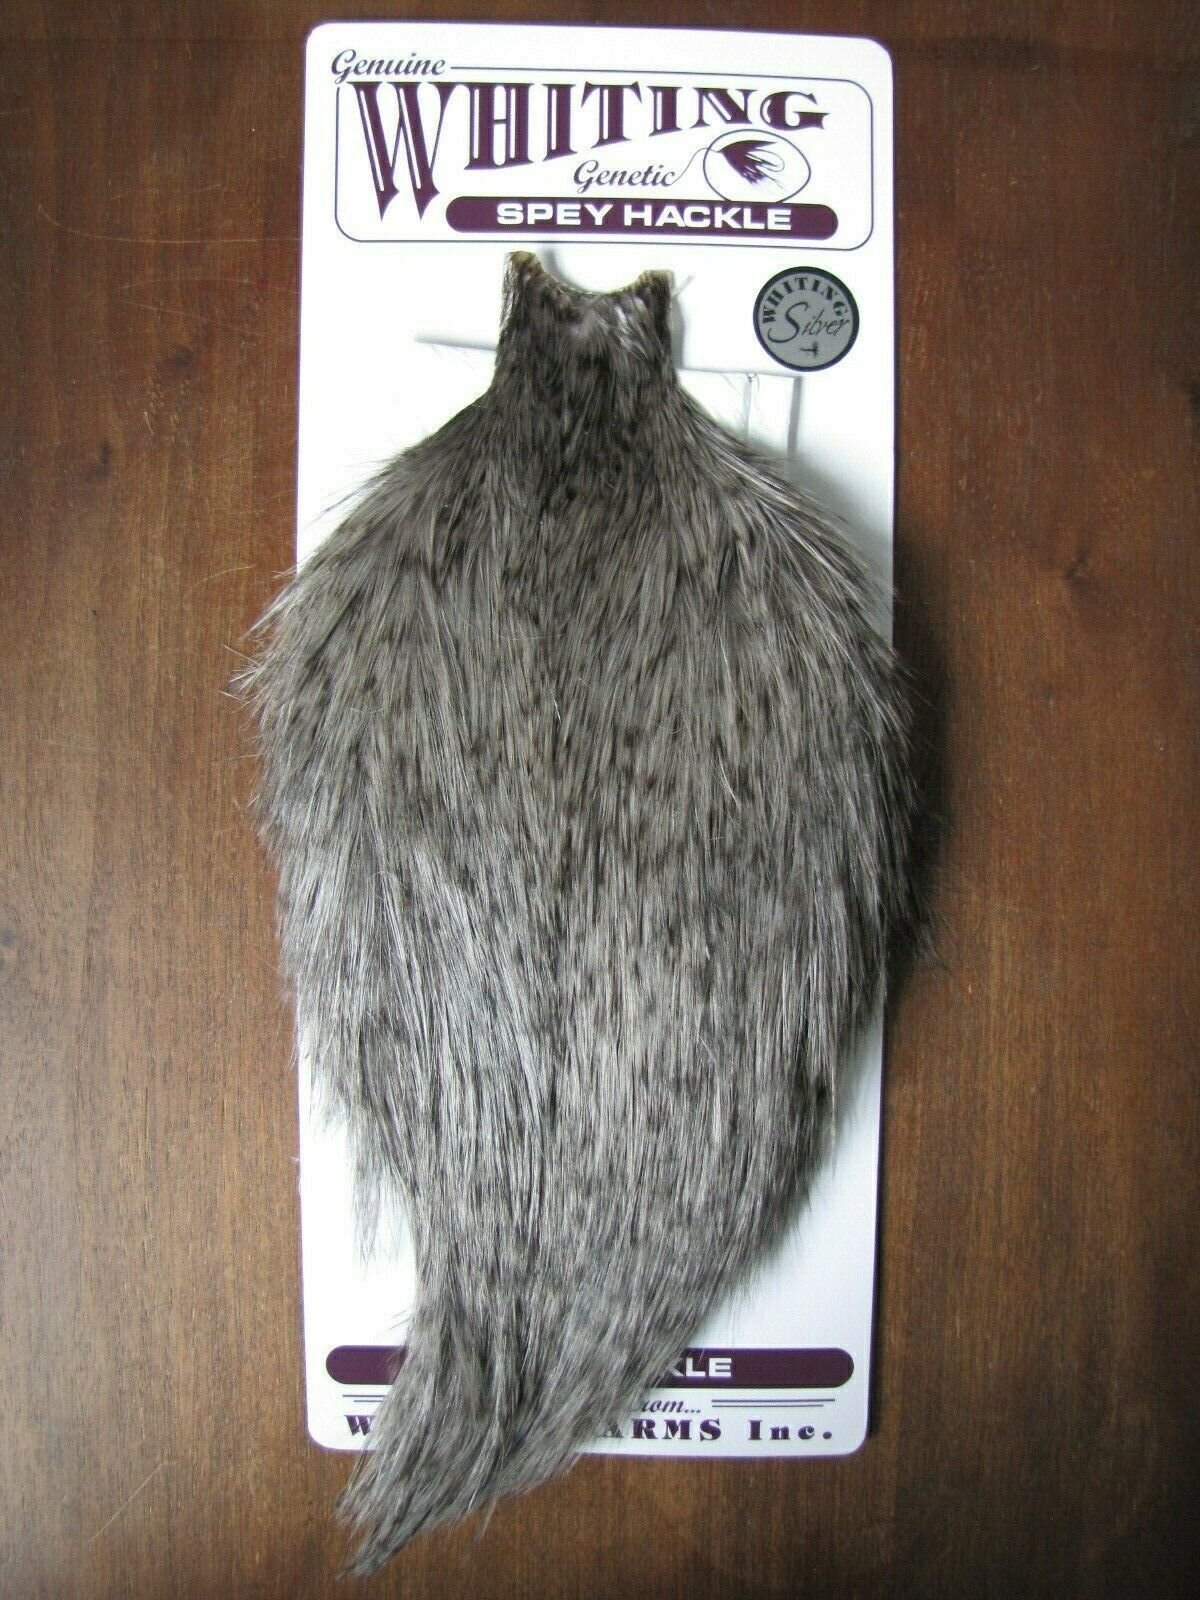 Fly tying-Whiting Plata Spey Gallo Cape Grizzly teñido Heron gris   A